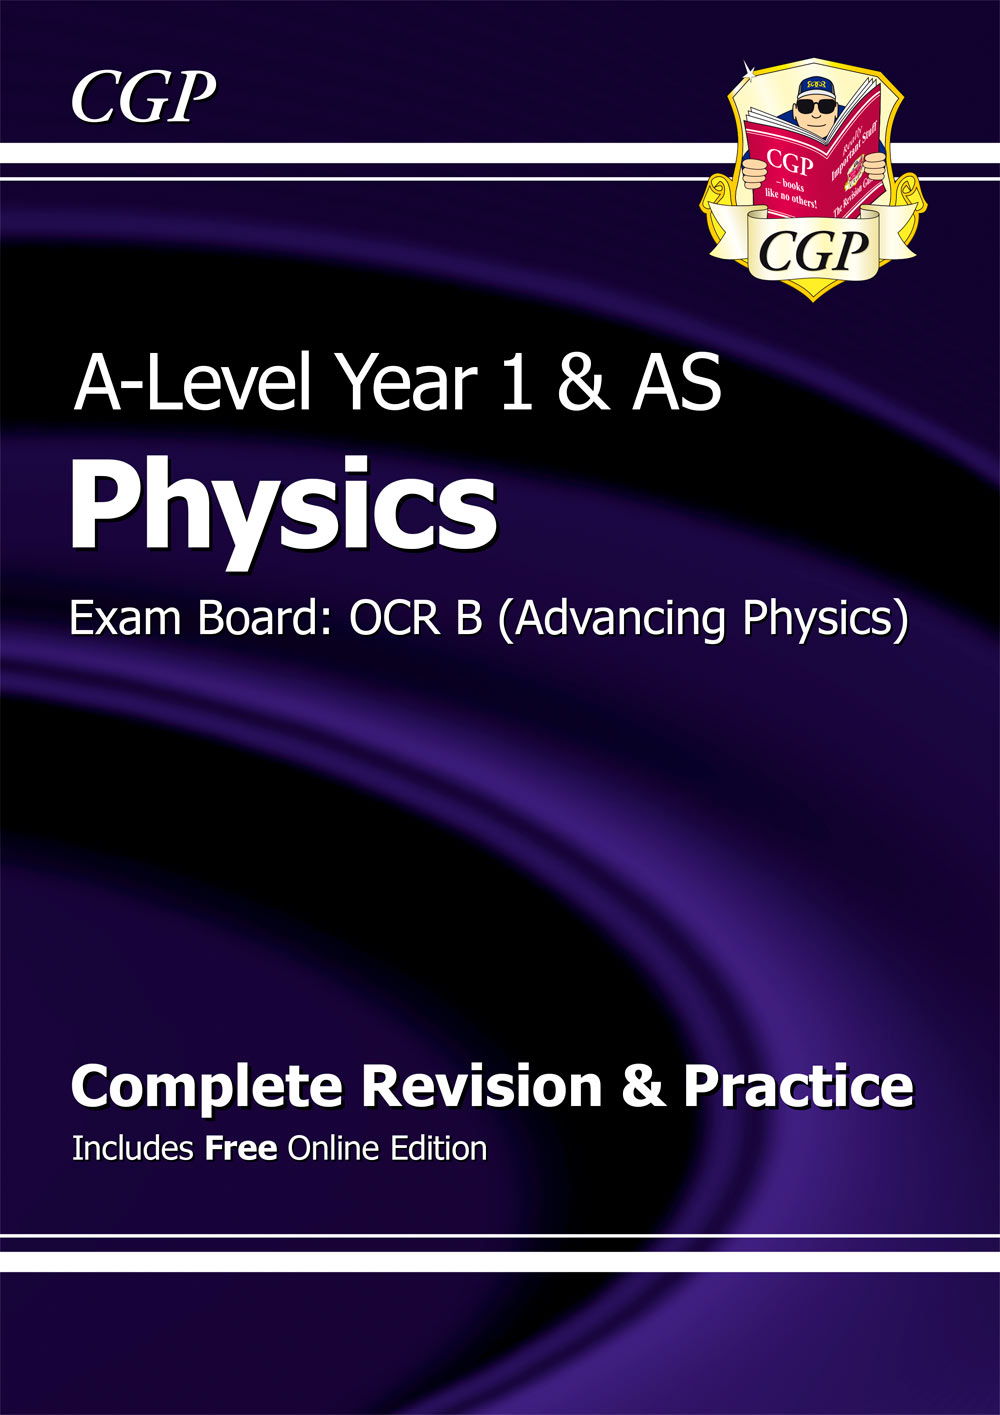 PRBR53 - A-Level Physics: OCR B Year 1 & AS Complete Revision & Practice with Online Edition